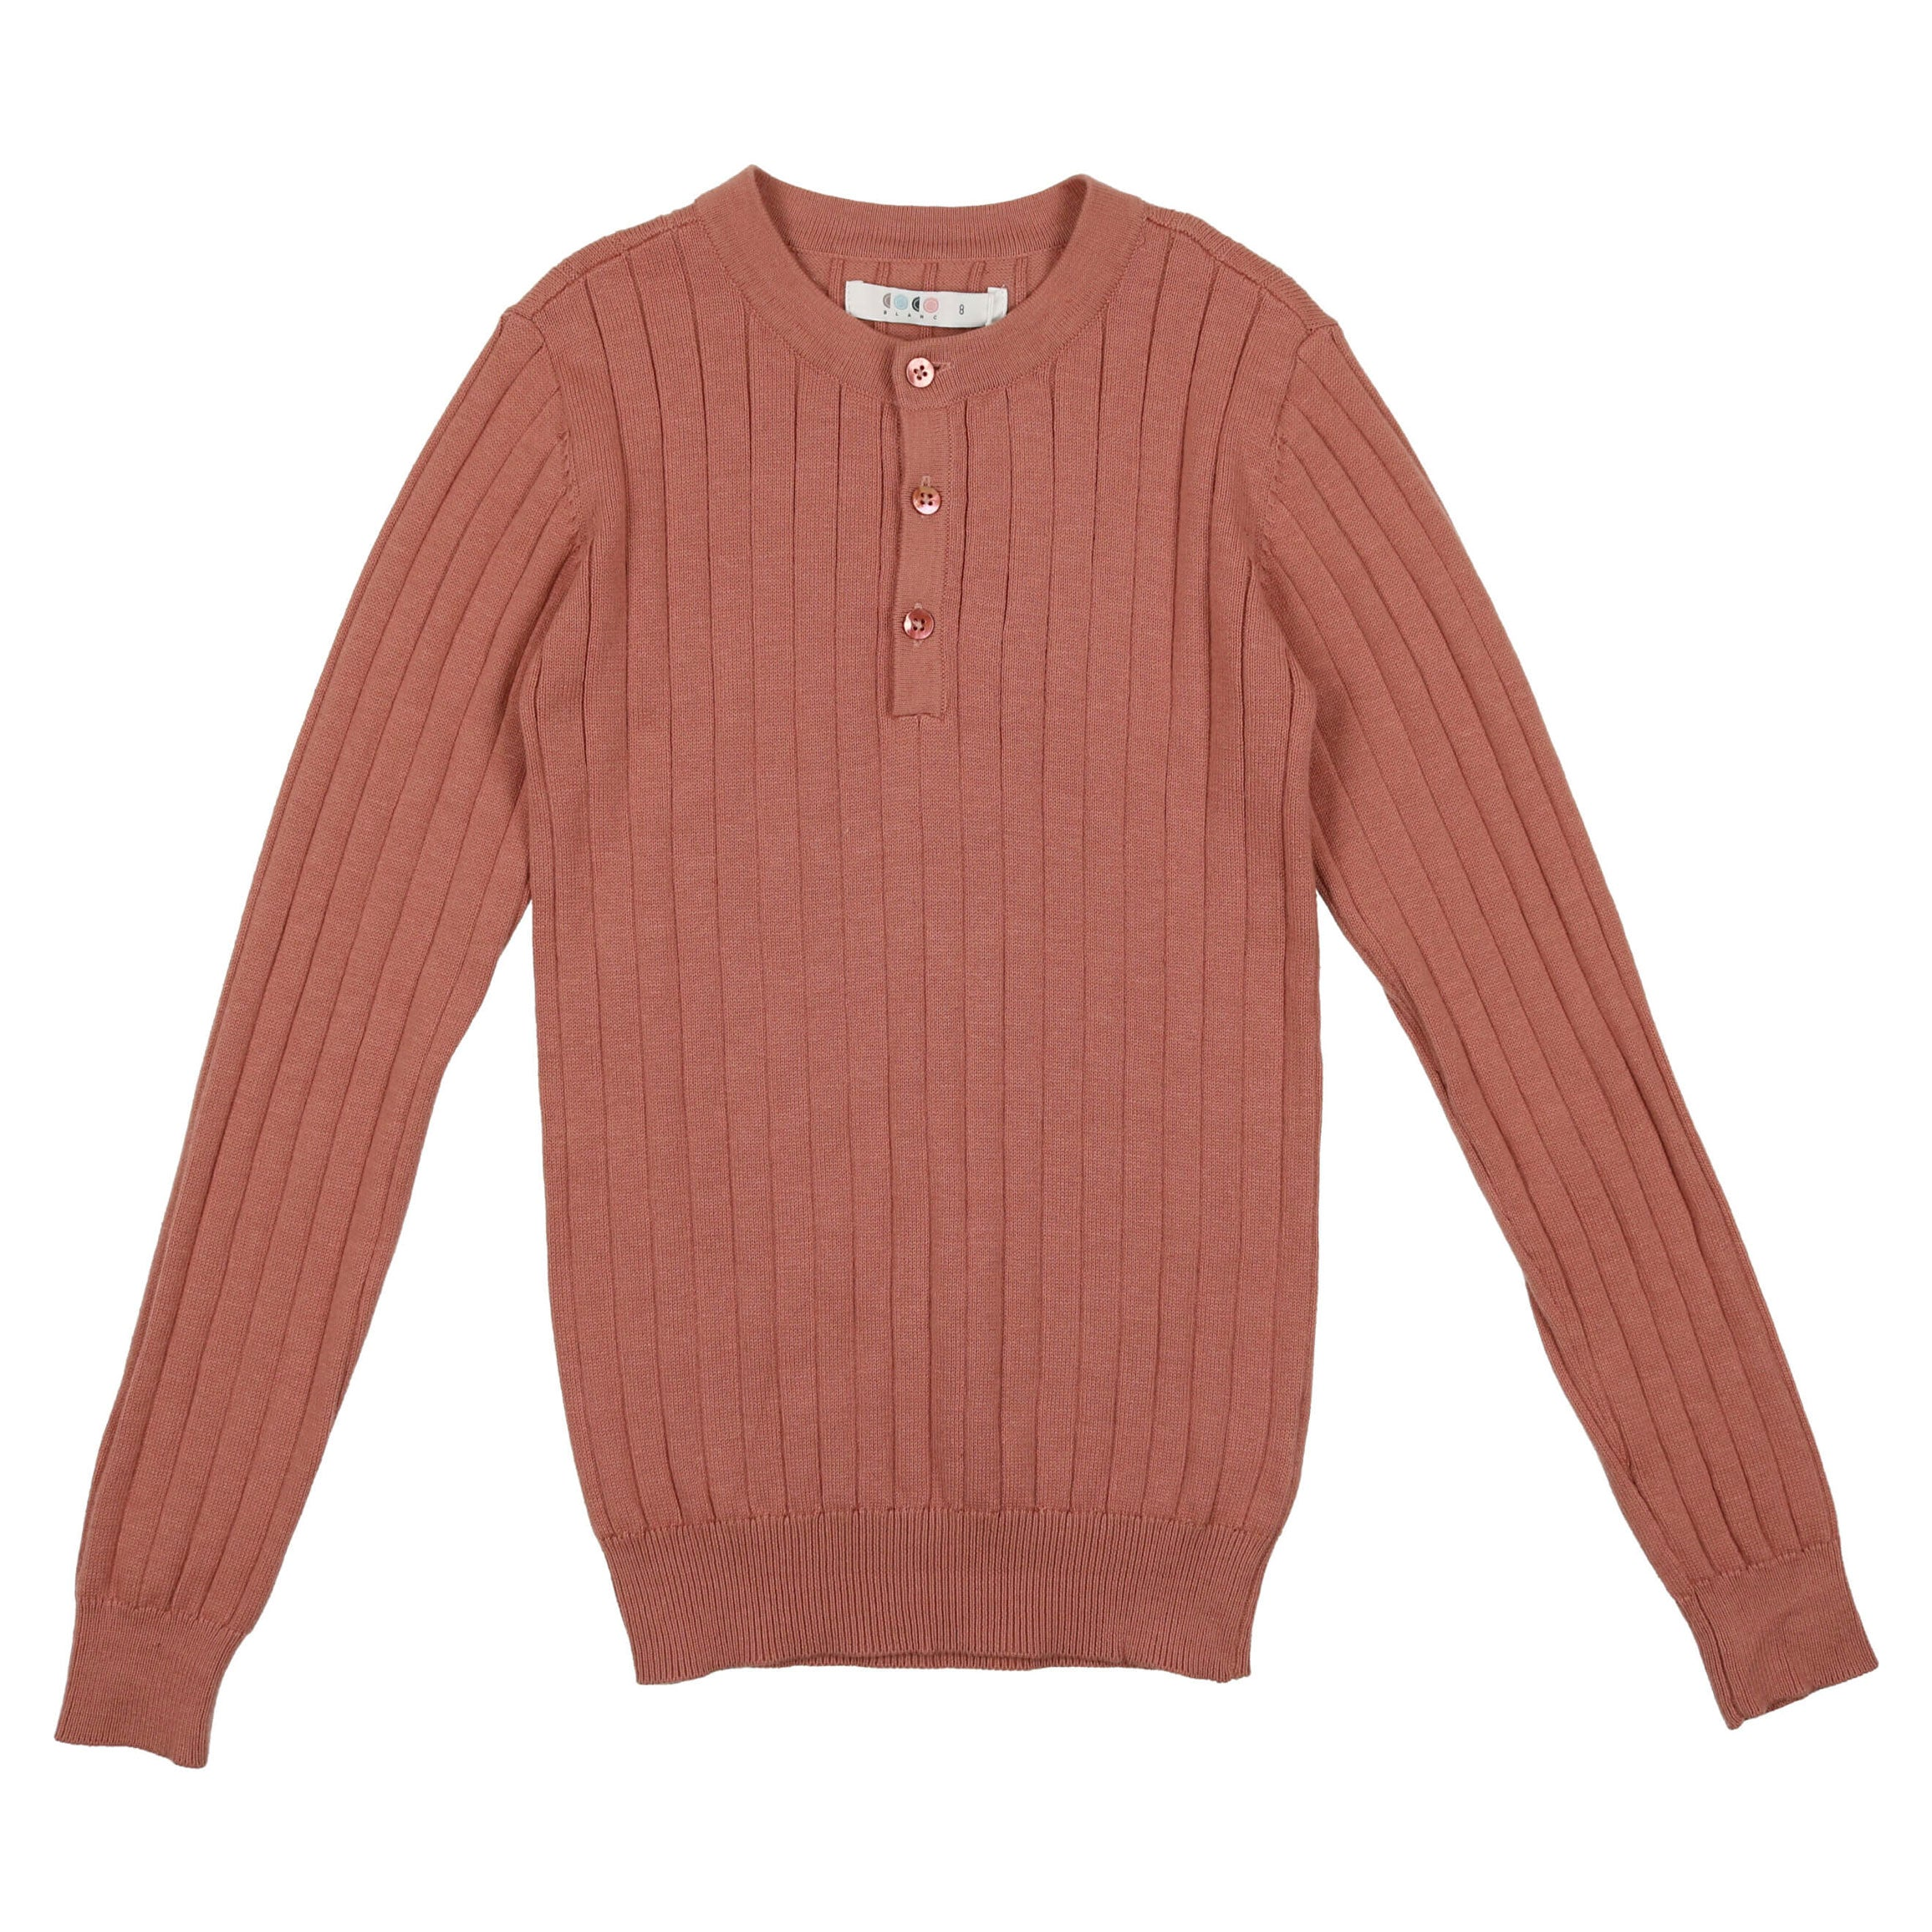 Coco Blanc Dusty Sand Button Ribbed Sweater